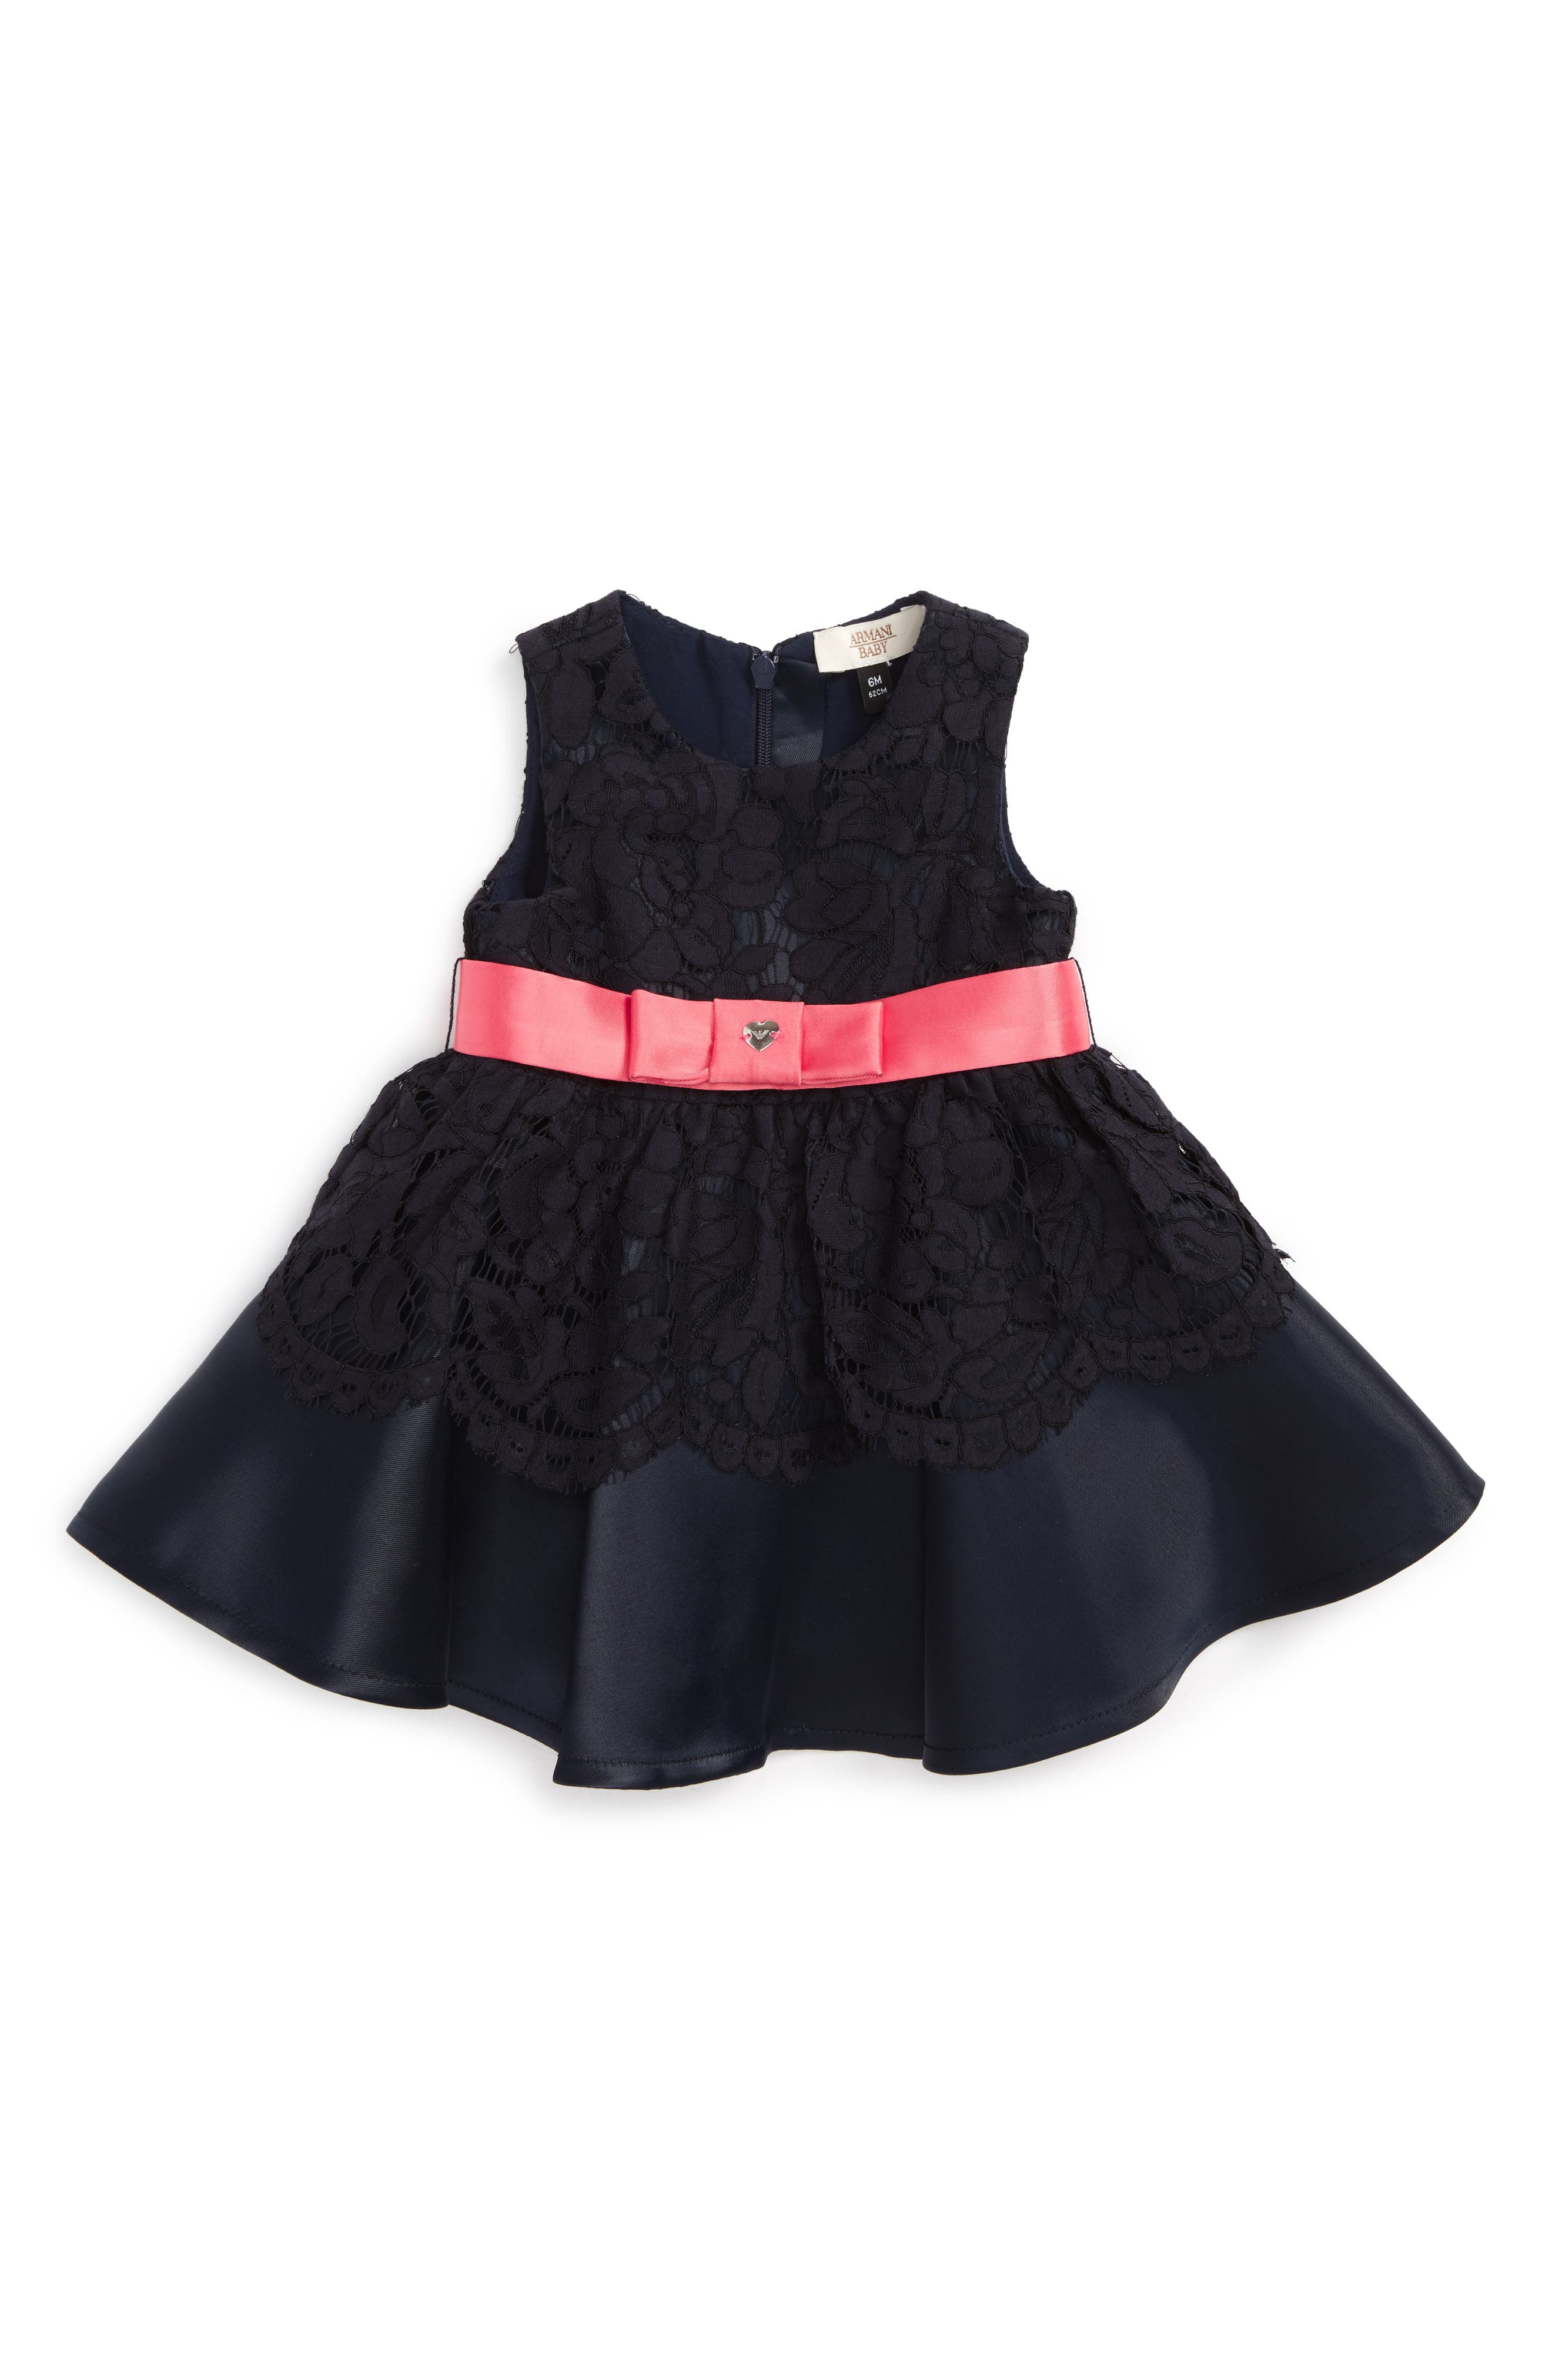 Main Image - Armani Junior Lace Party Dress (Baby Girls)